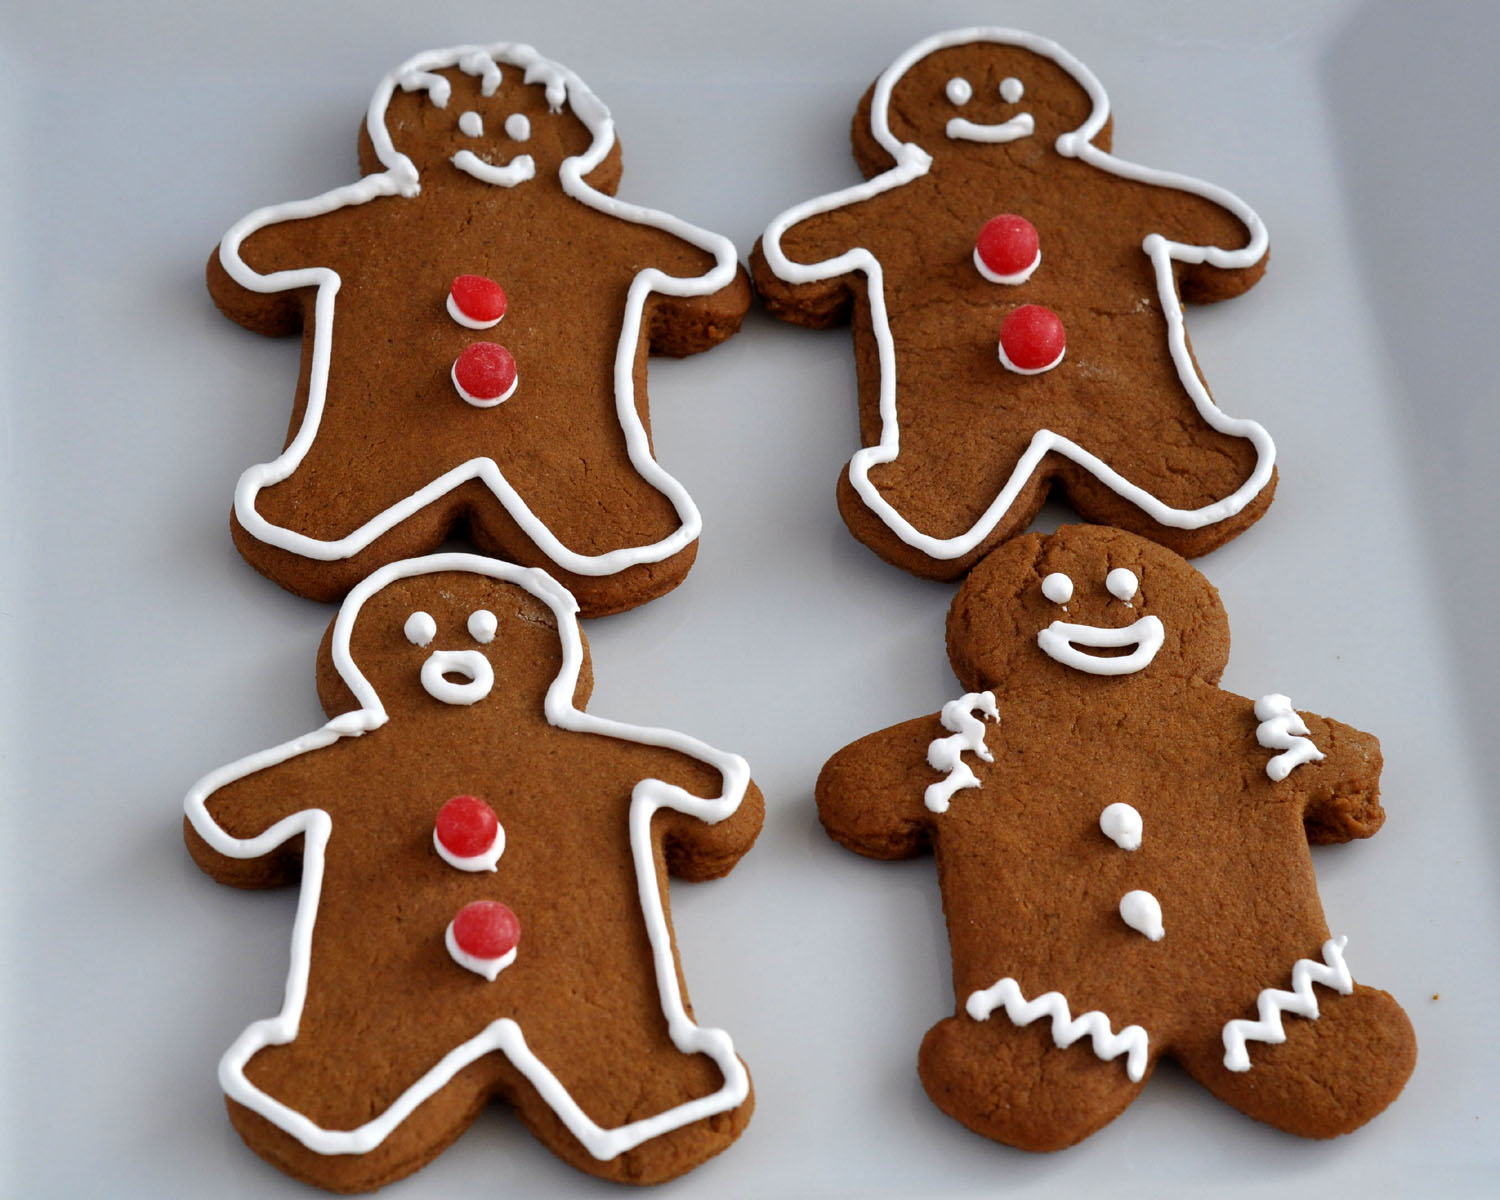 Beki Cook's Cake Blog: Gingerbread Cookie Recipe